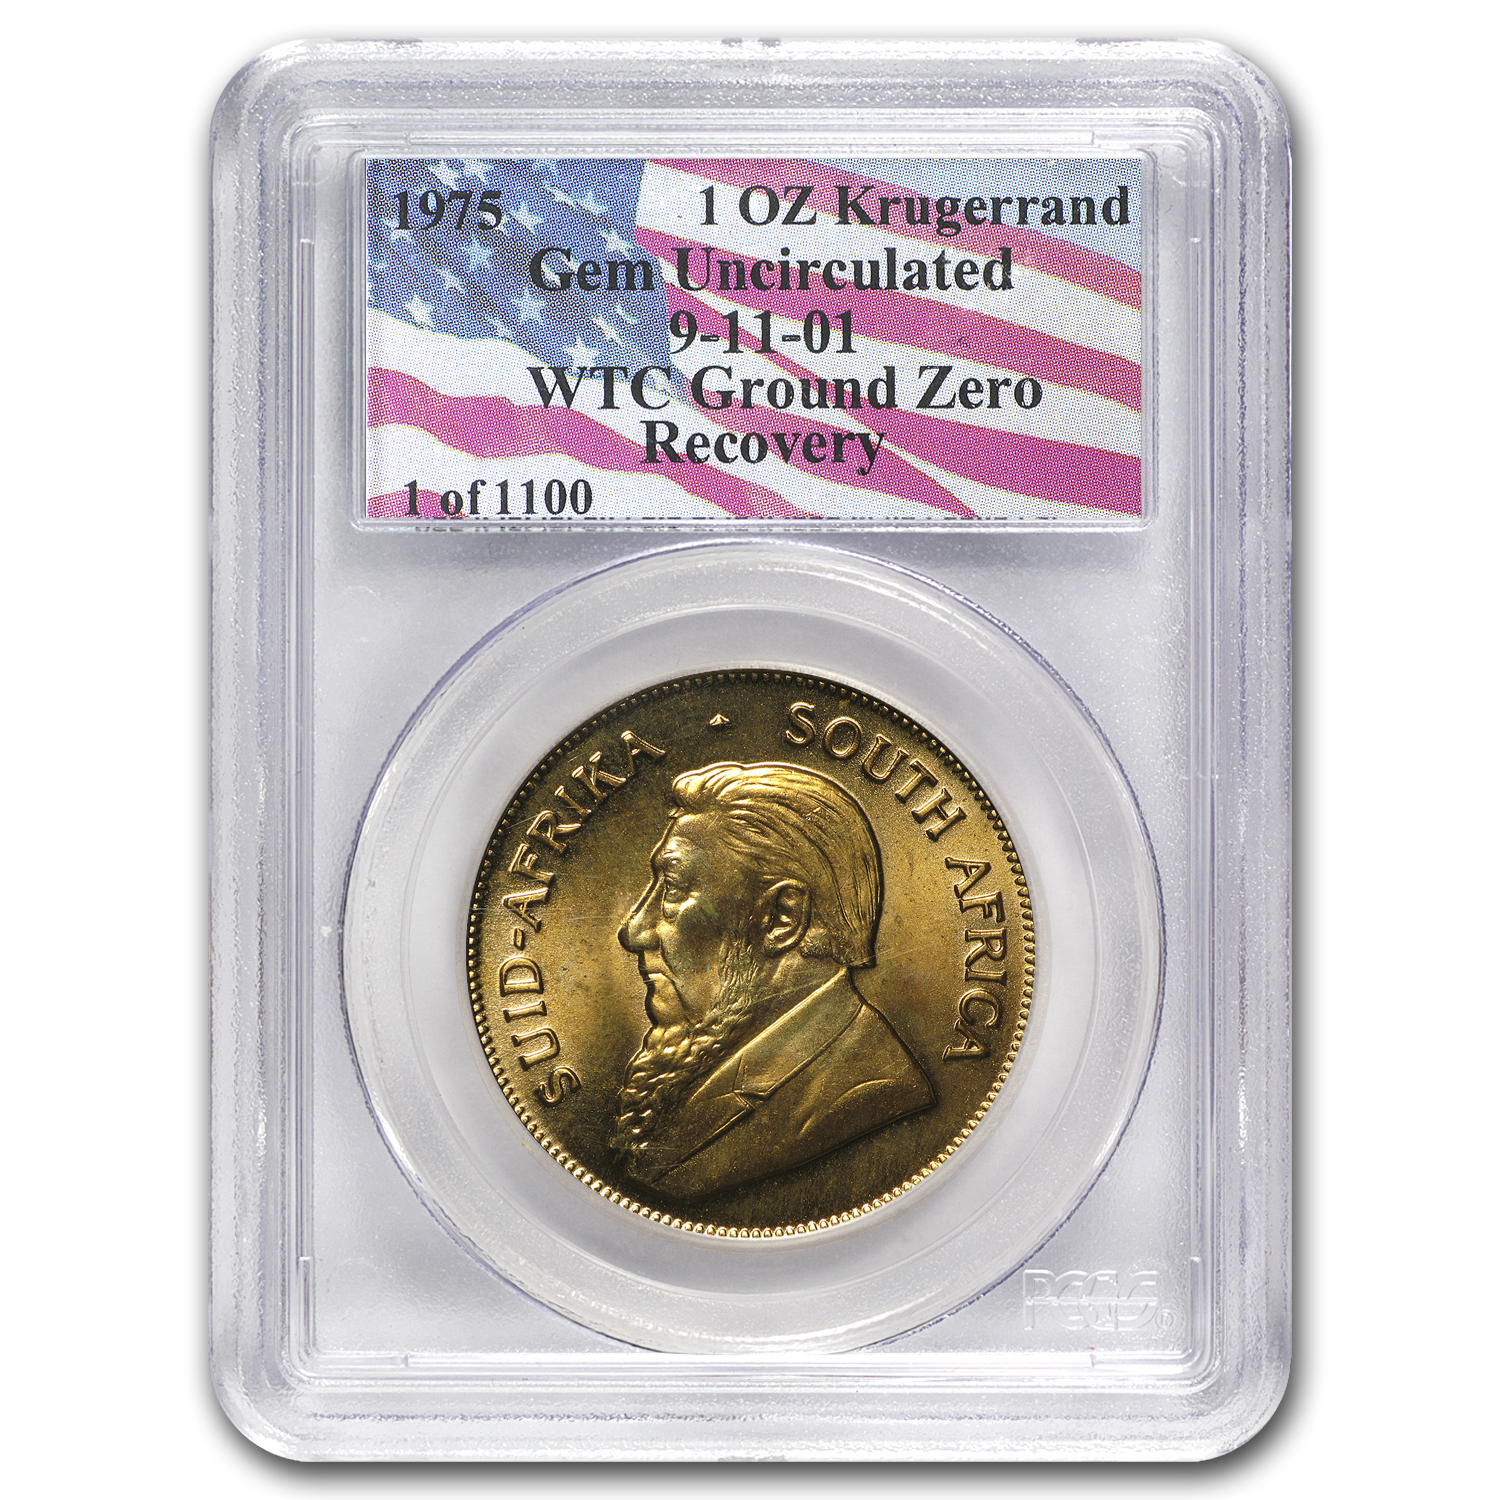 1975 South Africa 1 oz Gold Krugerrand Gem Unc PCGS (WTC)